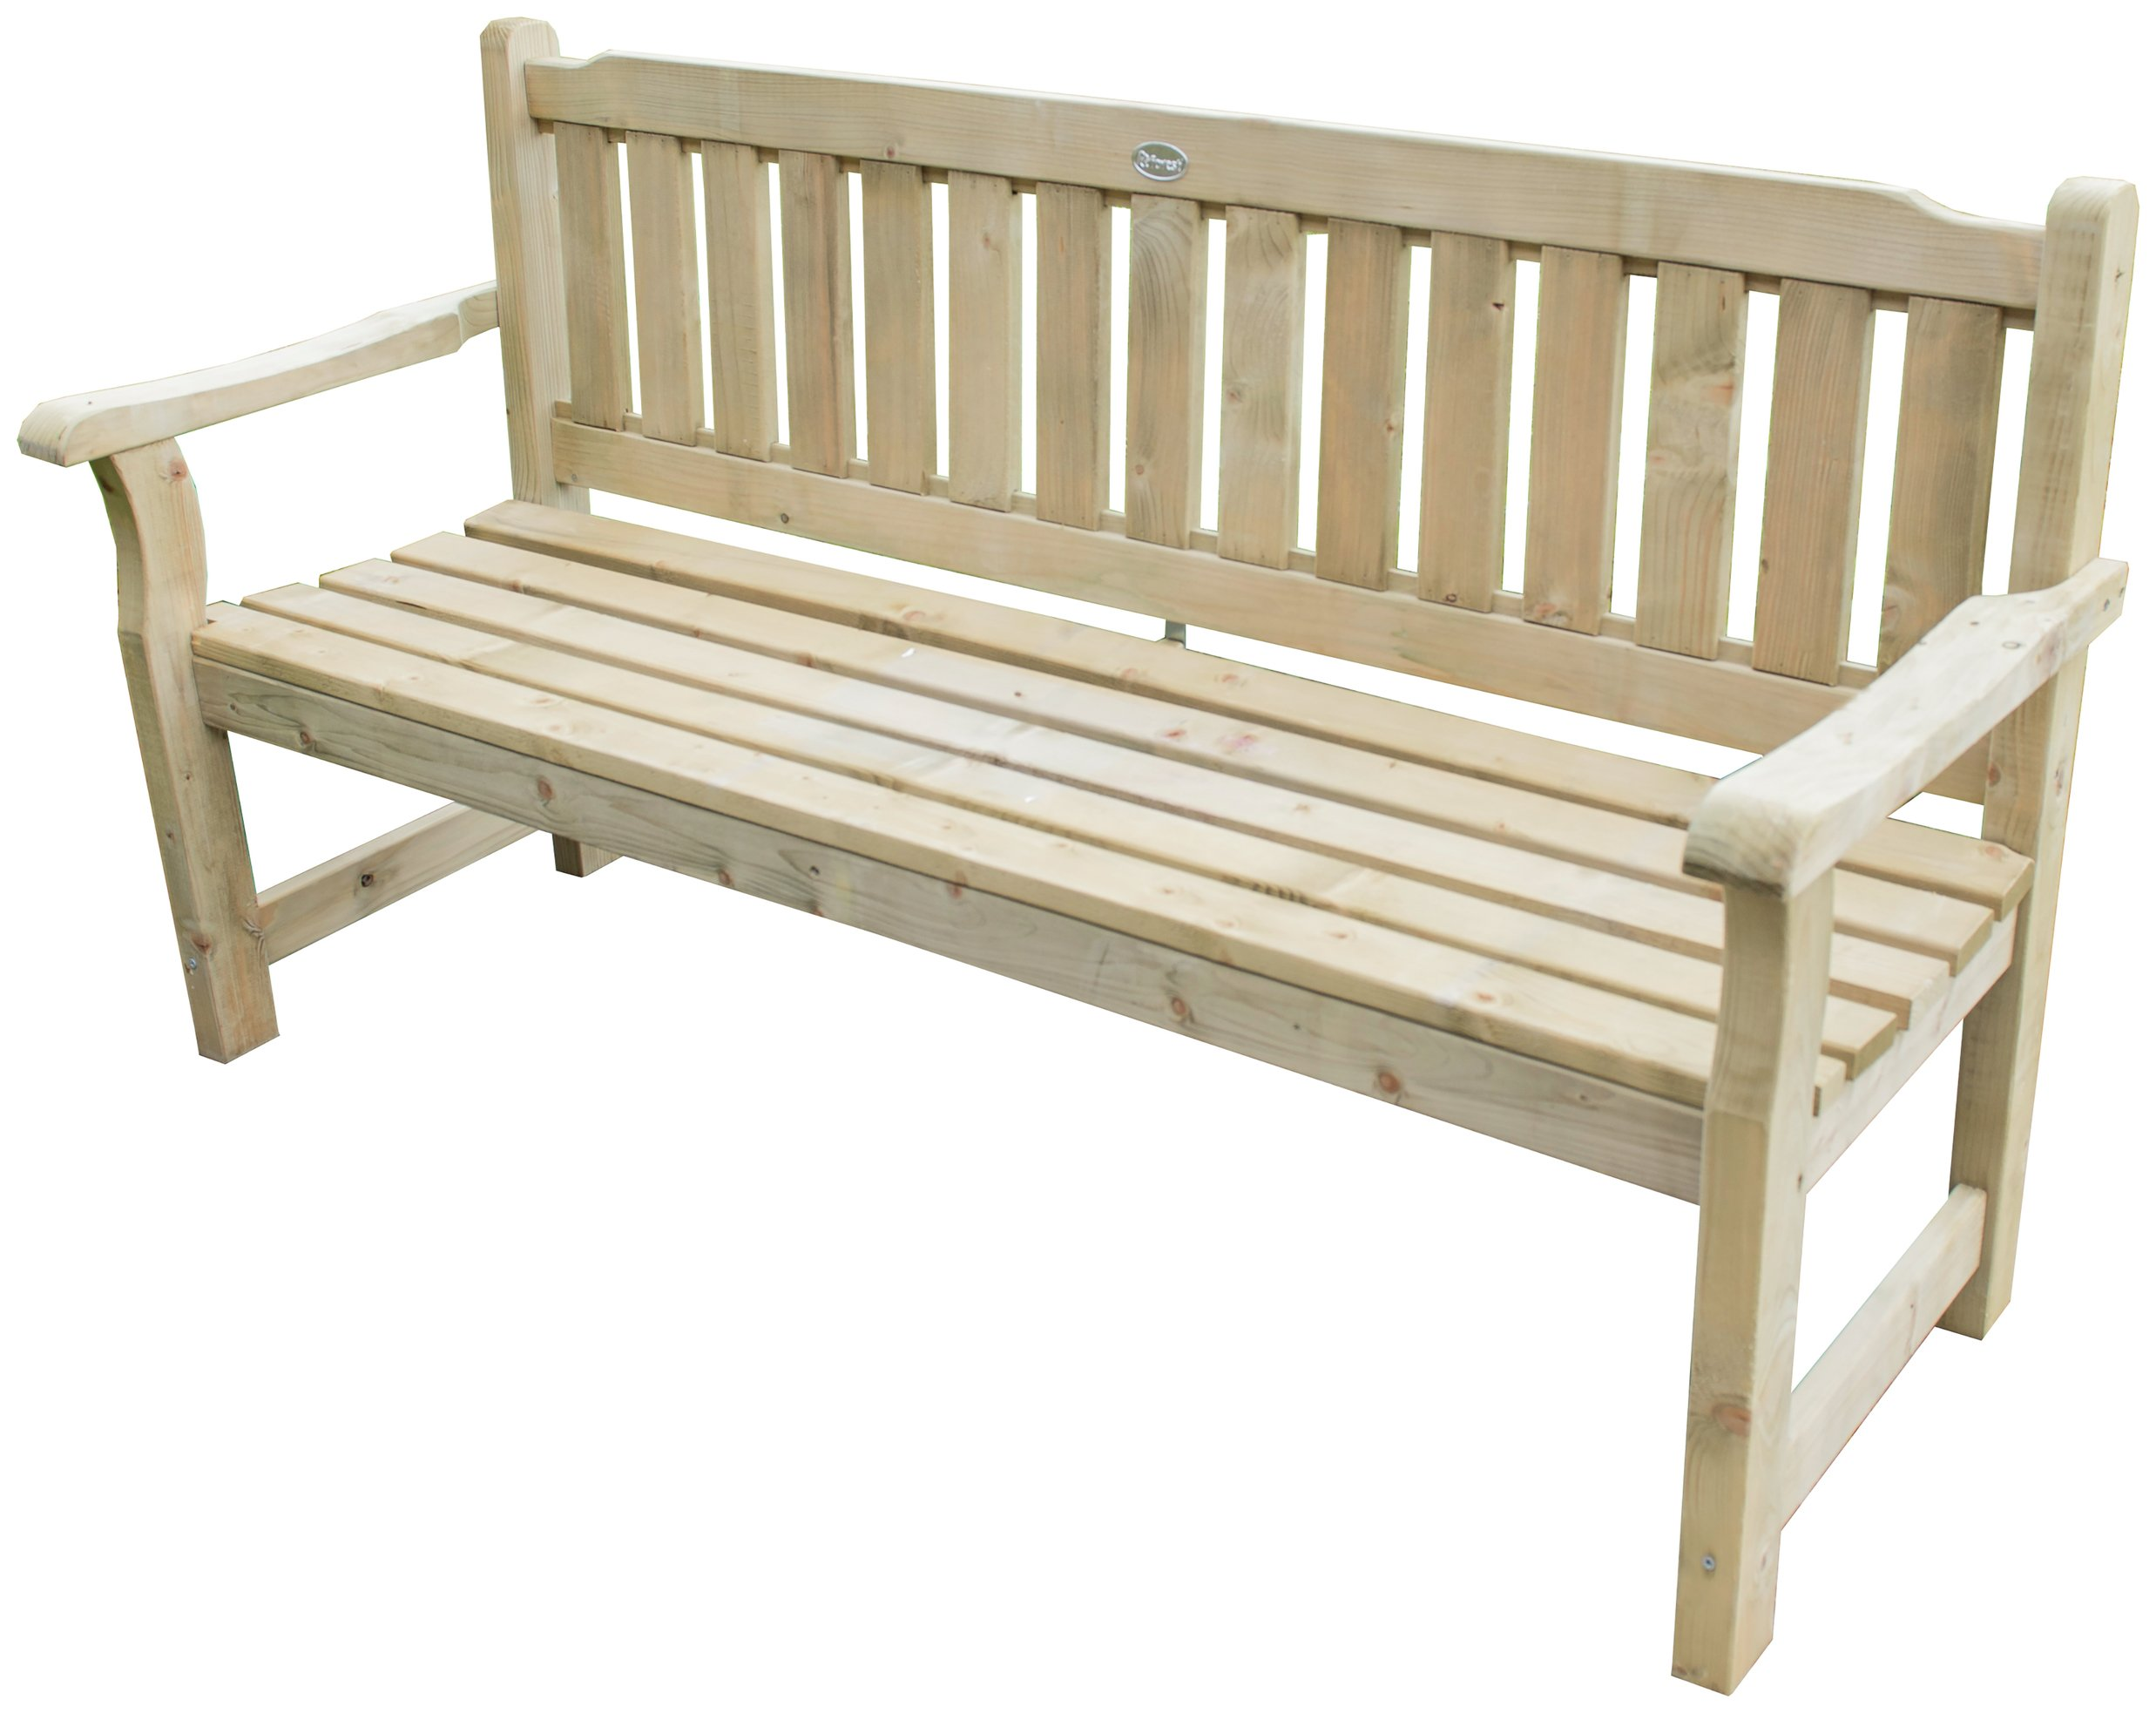 Image of Forest 5ft Rosedene Garden Bench